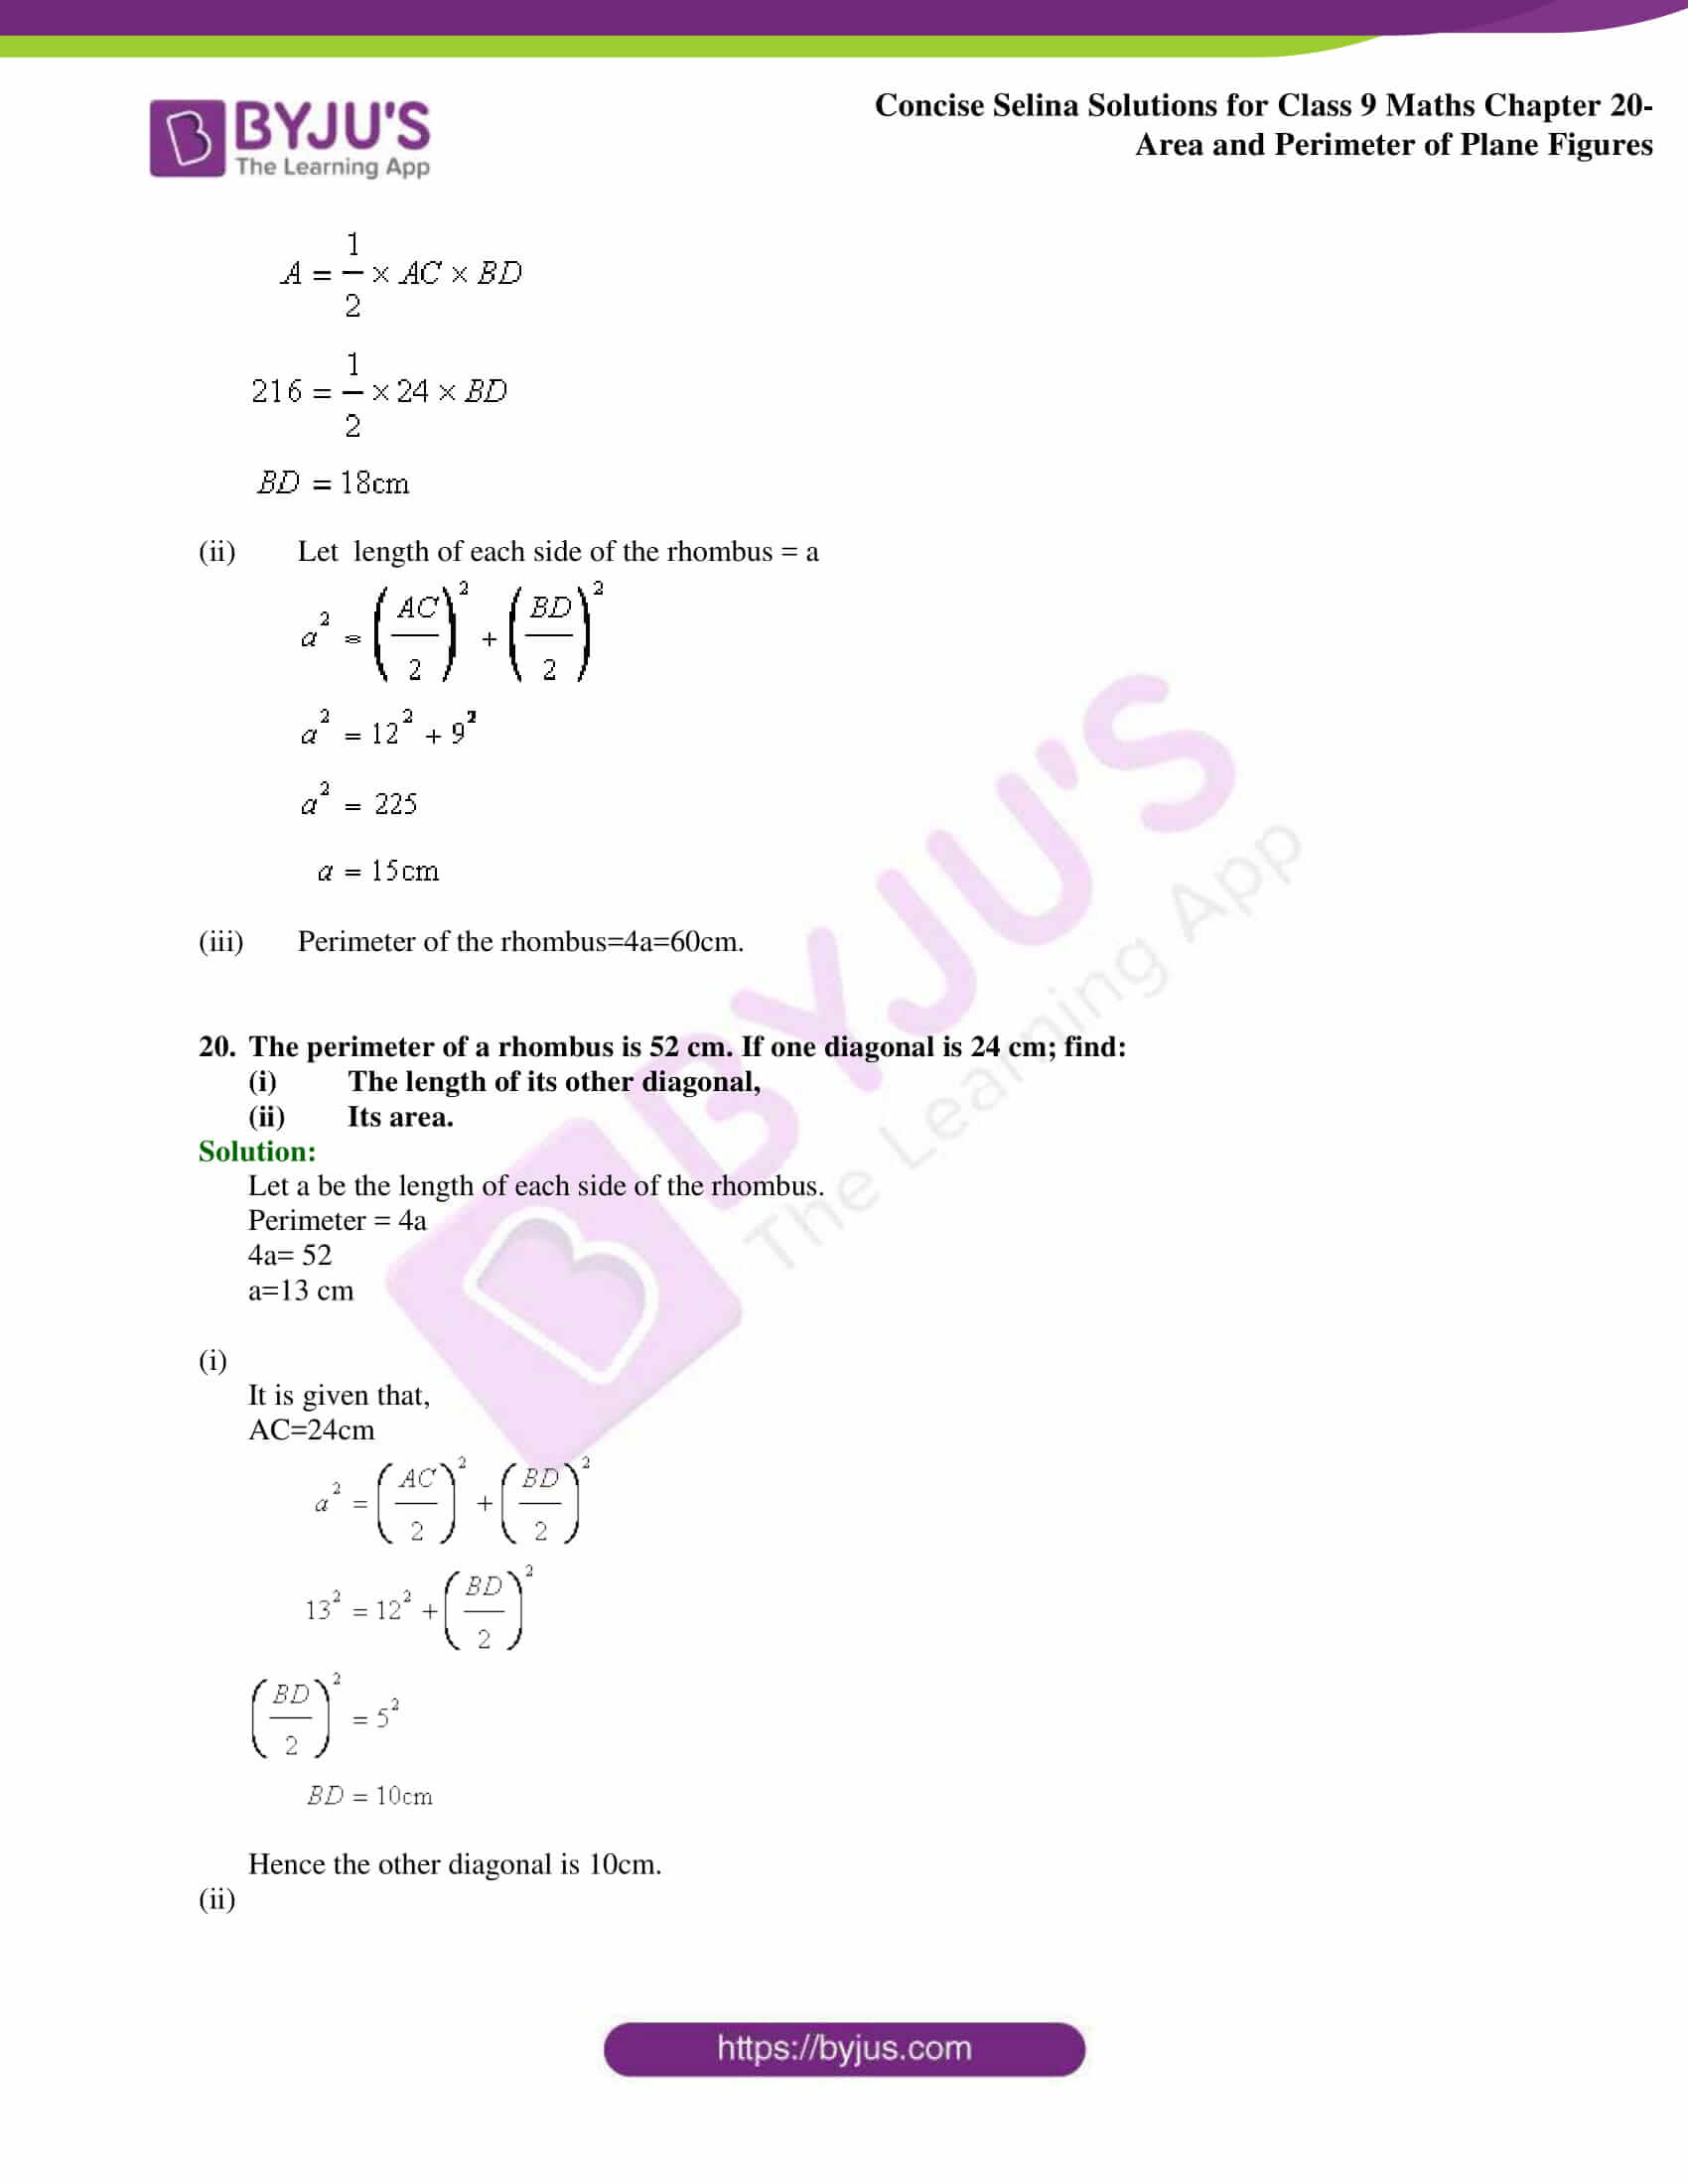 Concise Selina Solutions Class 9 Maths Chapter 20 Area and Perimeter of Plane part 20